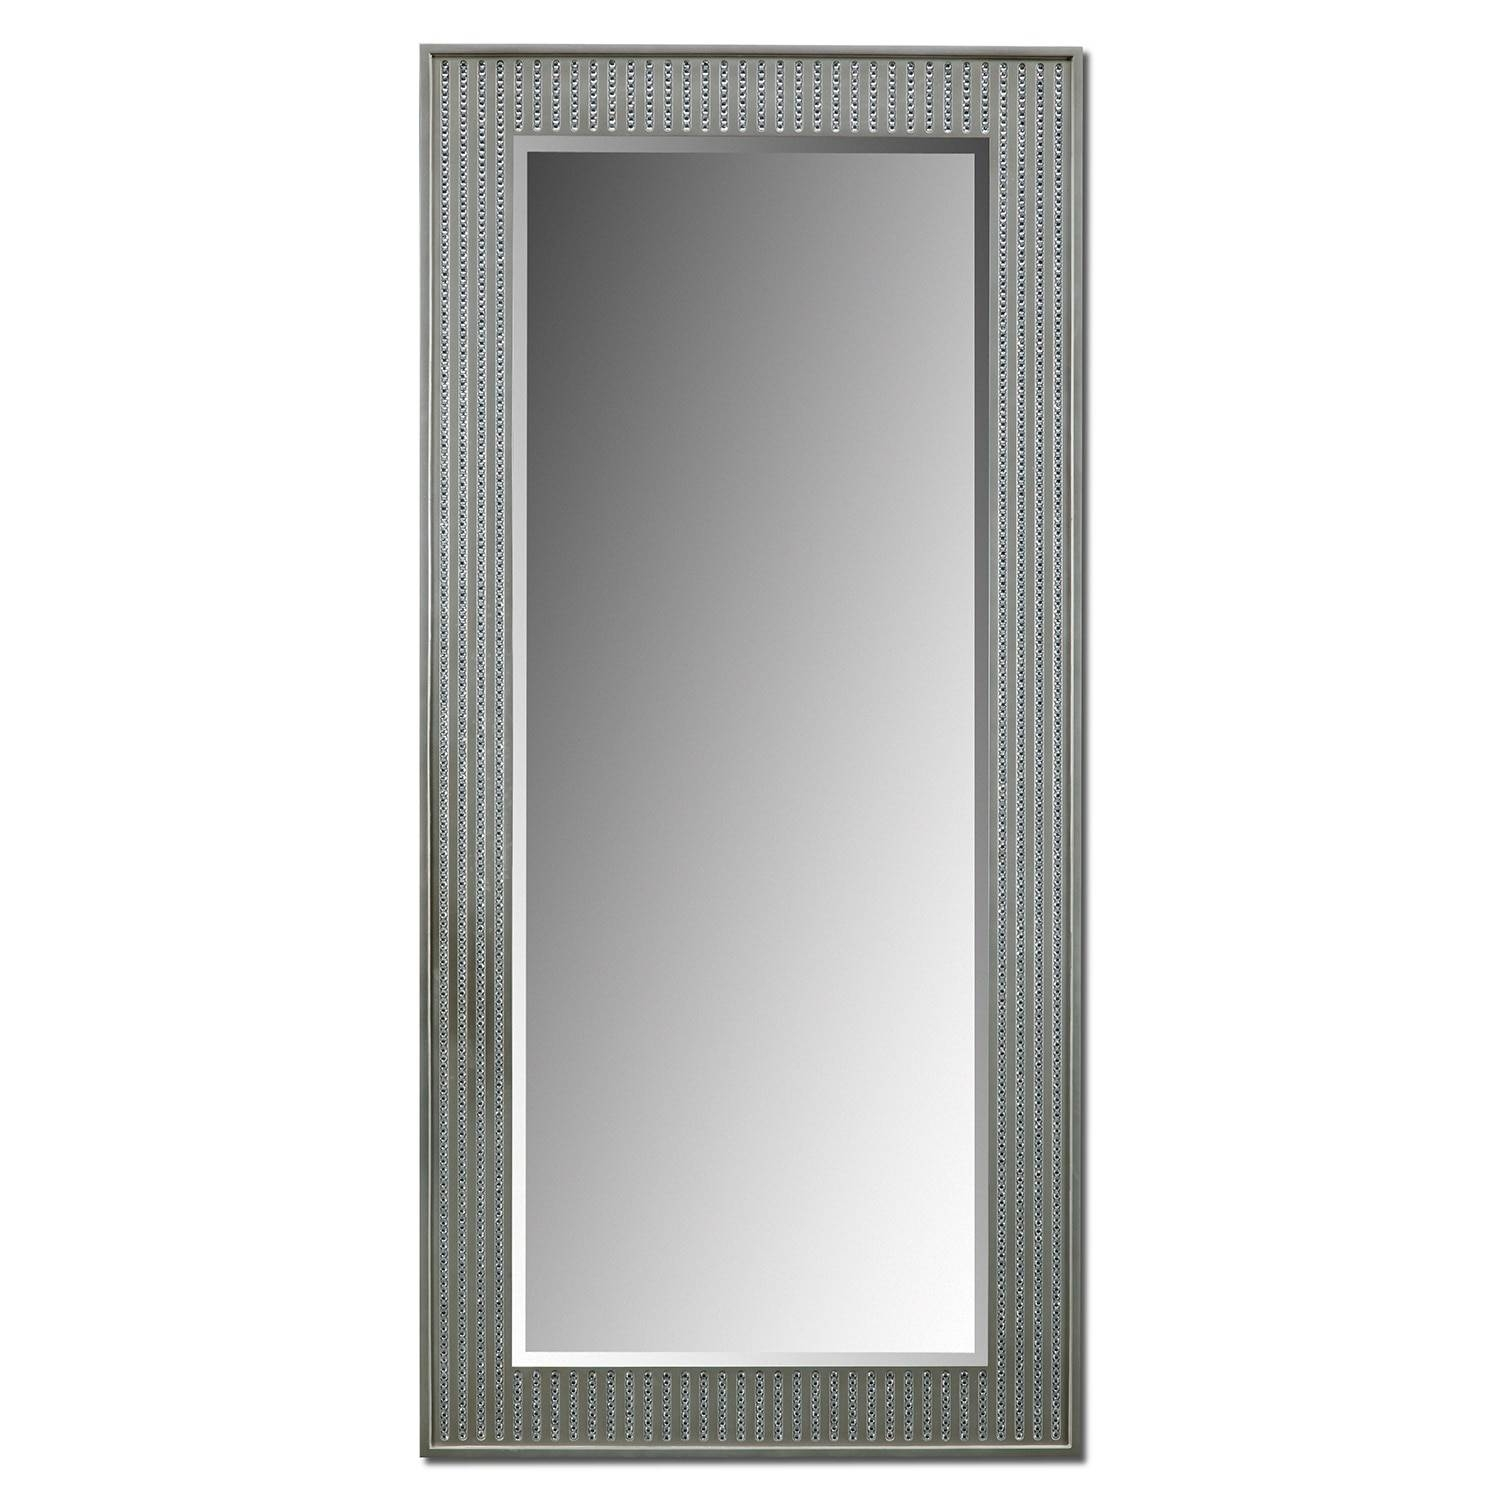 Wall & Floor Mirrors | Value City Furniture intended for Big Silver Mirrors (Image 24 of 25)